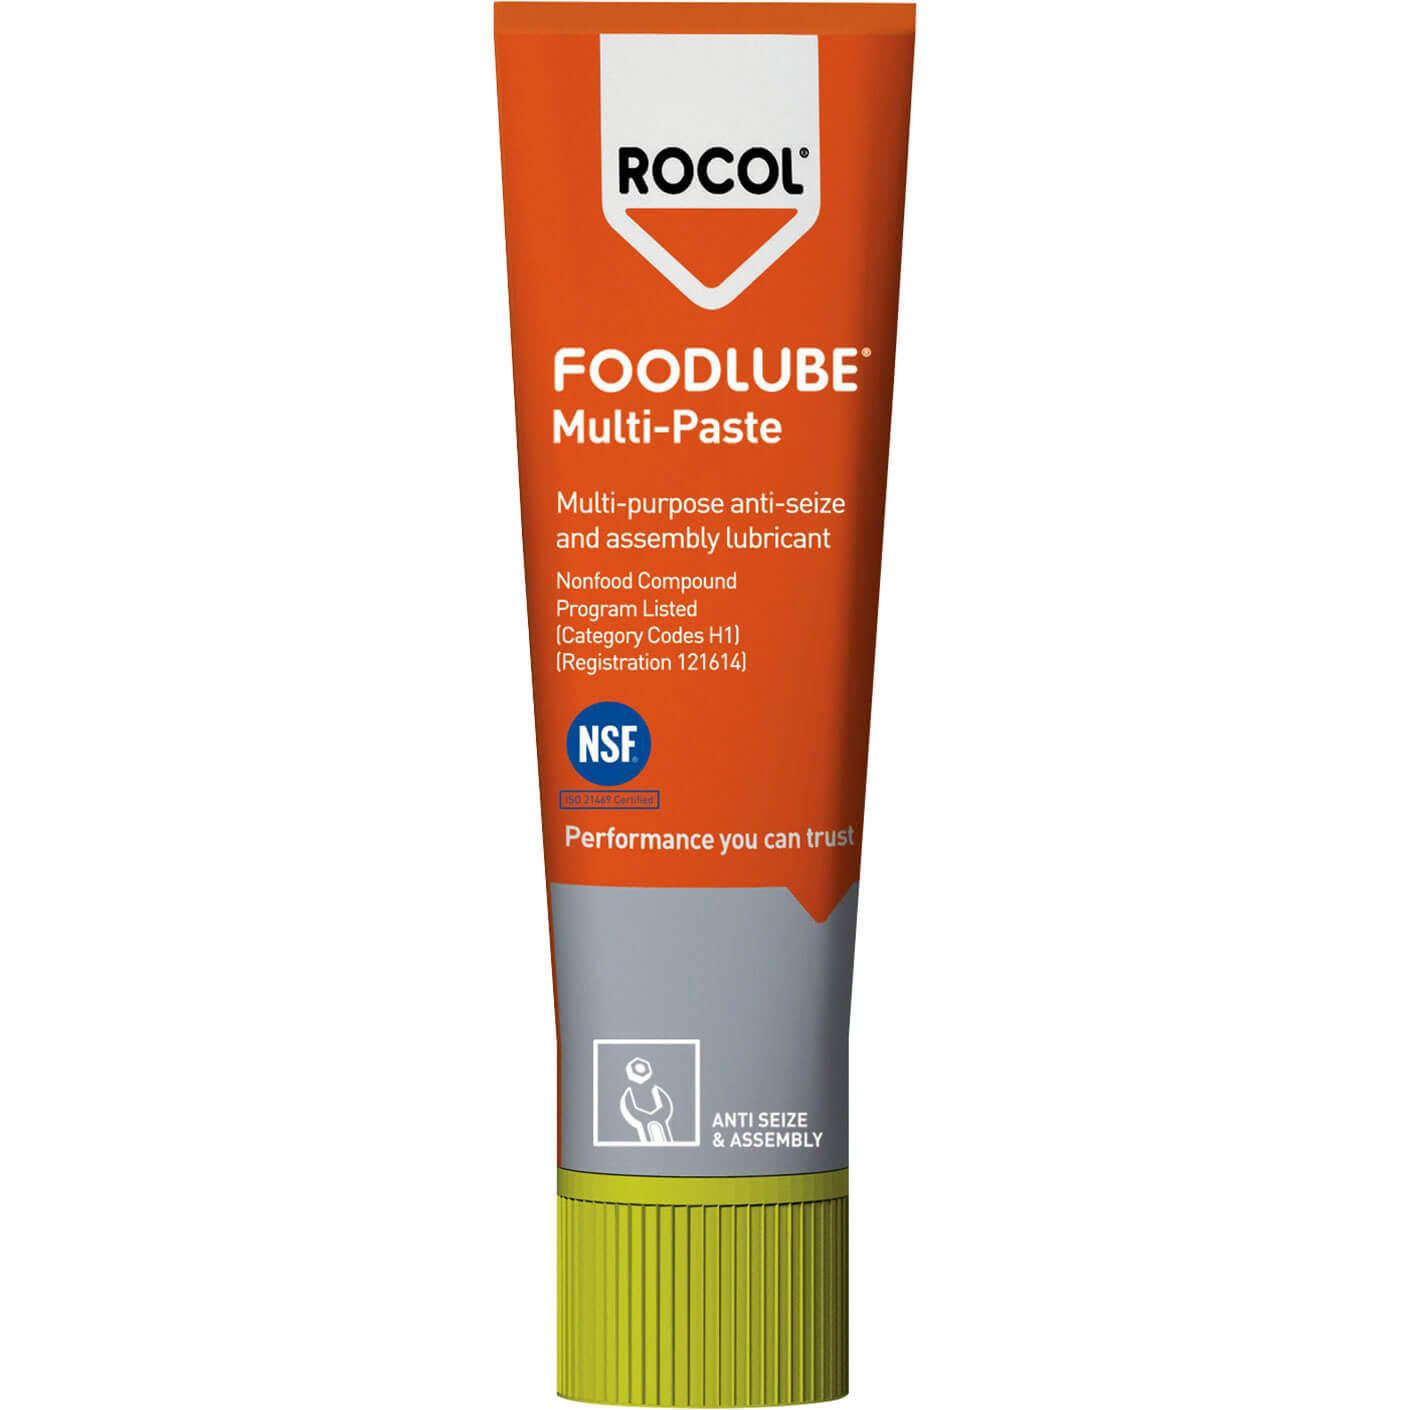 Image of Rocol Foodlube Multi-Paste 85g